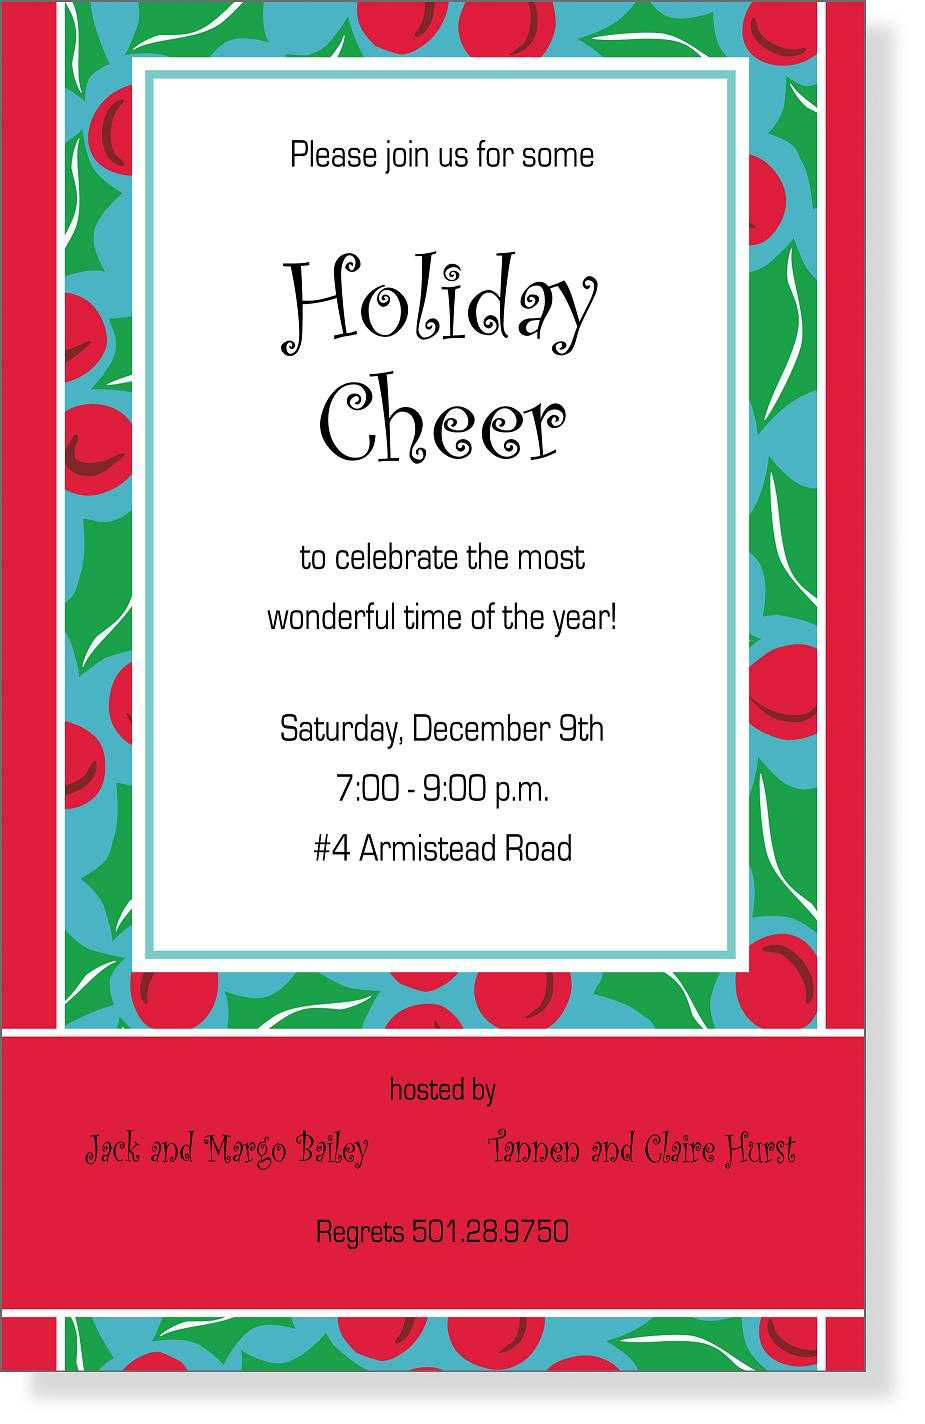 Christmas open house invitations christmas open house invitations christmas open house invitations christmas open house invitations for special events stopboris Choice Image